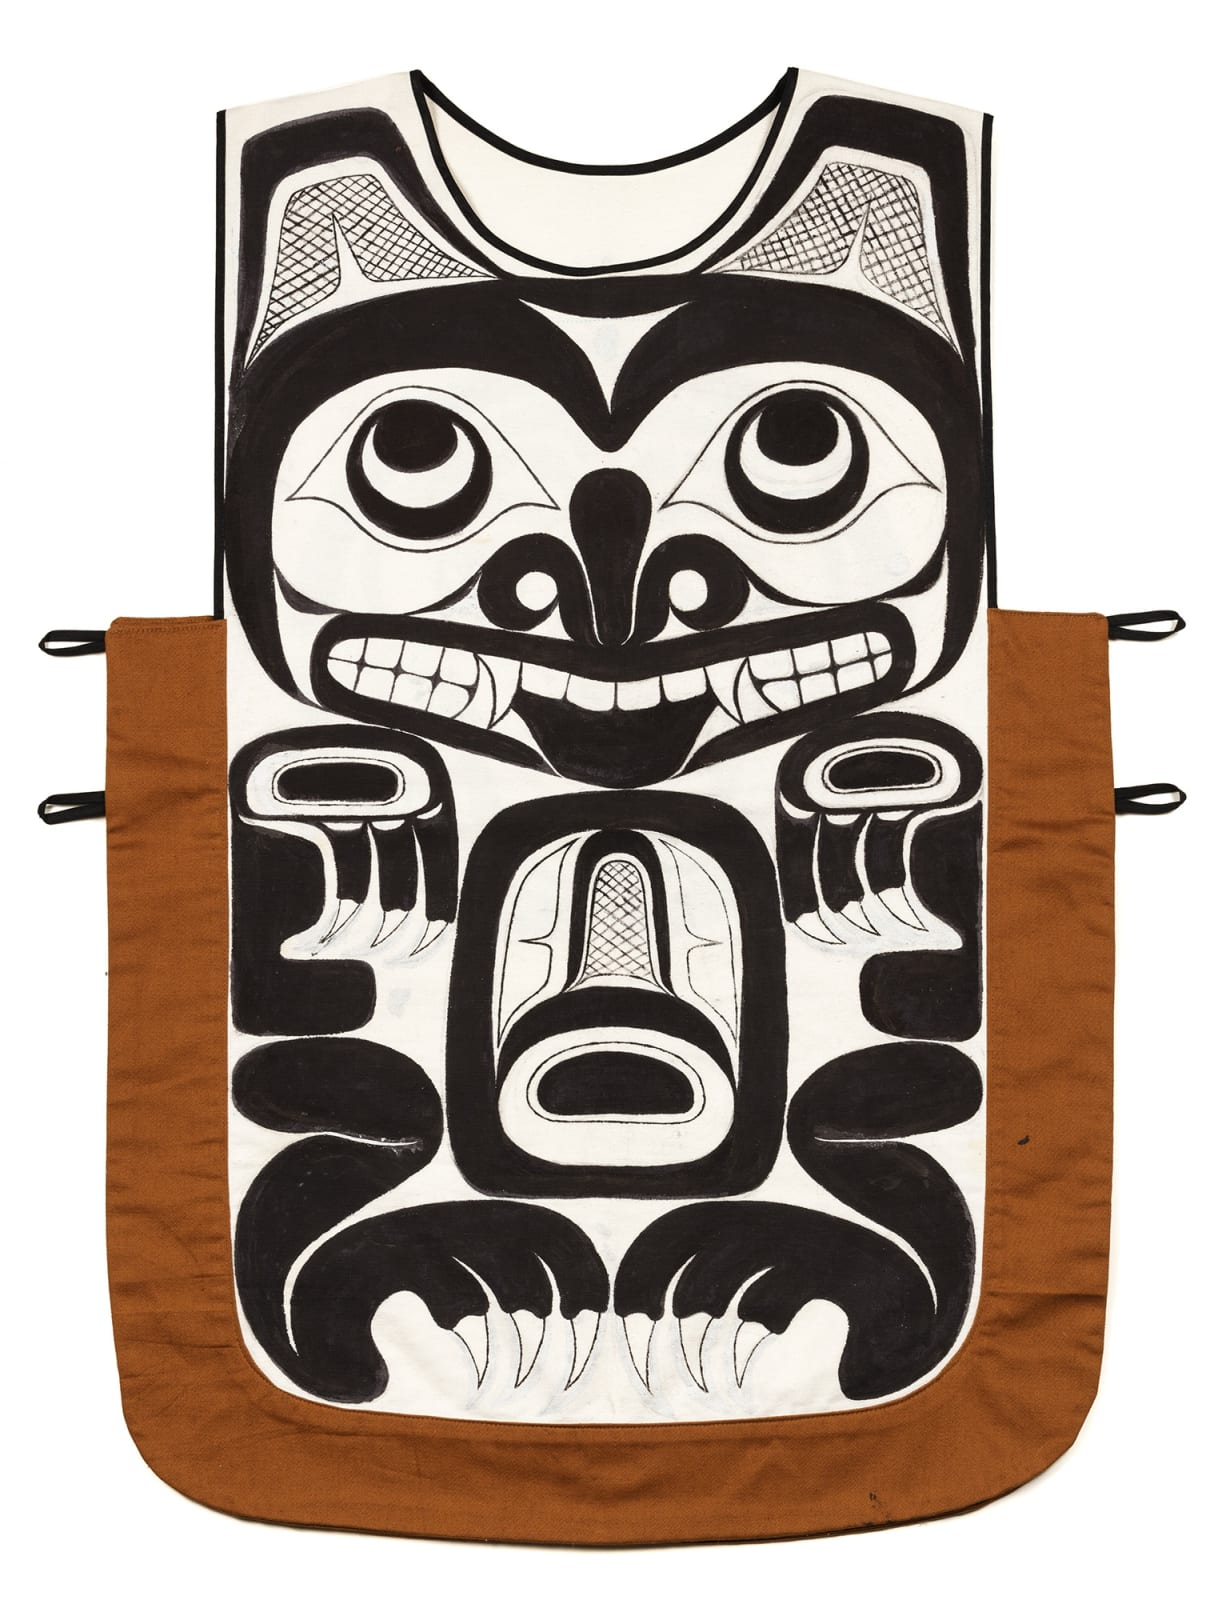 Lot 73 BILL REID, O.B.C., R.C.A. (1920-1998) Painted Canoe Tunic, 1989 pigment on a hand-sewn fabric tunic, 35.25 x 27 in (89.5 x 68.6 cm) Estimate: $10,000 — $15,000 Price realized: $15,600